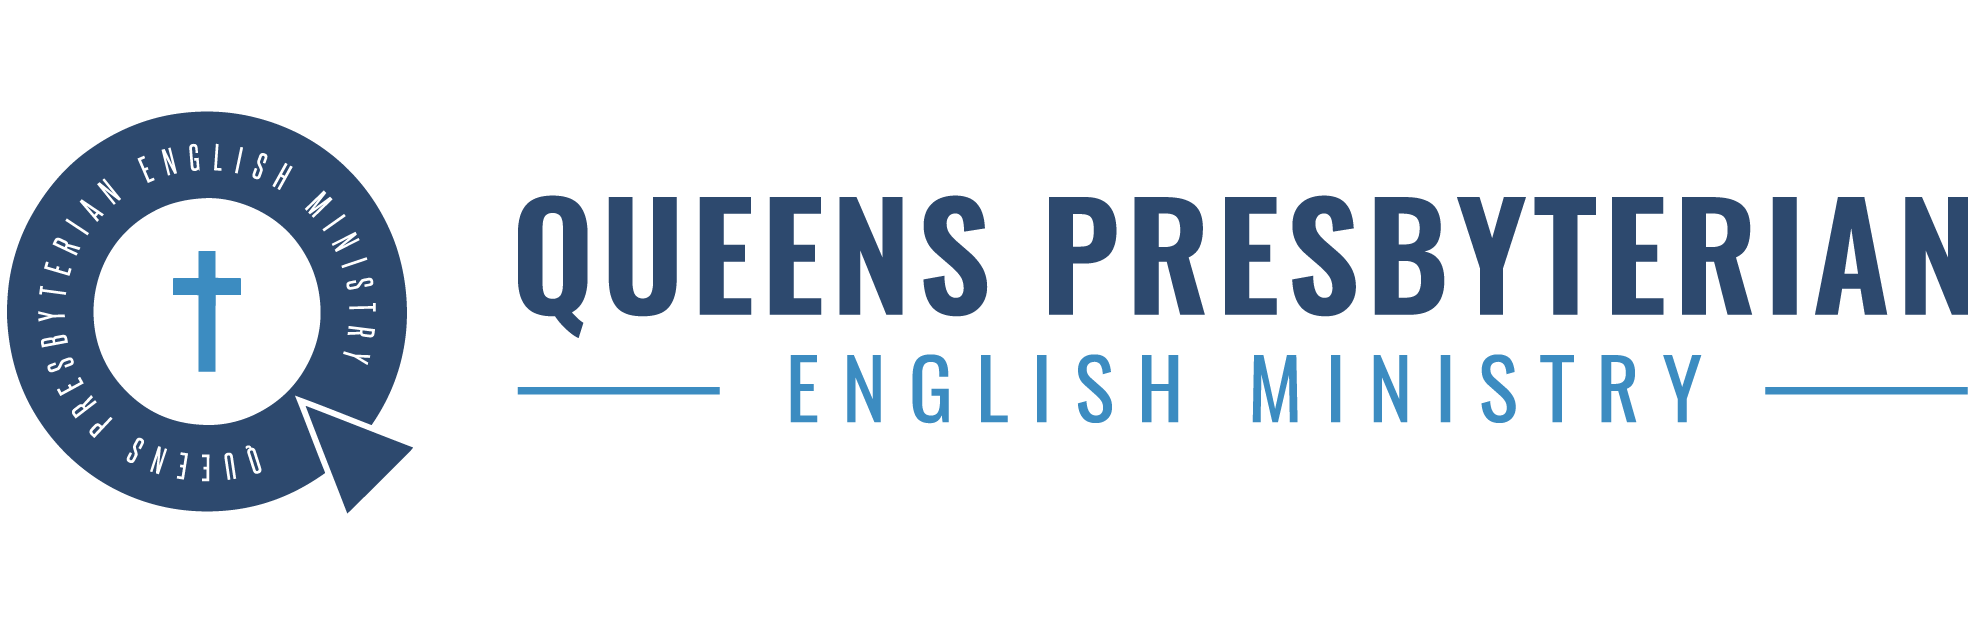 Queens Presbyterian English Ministry